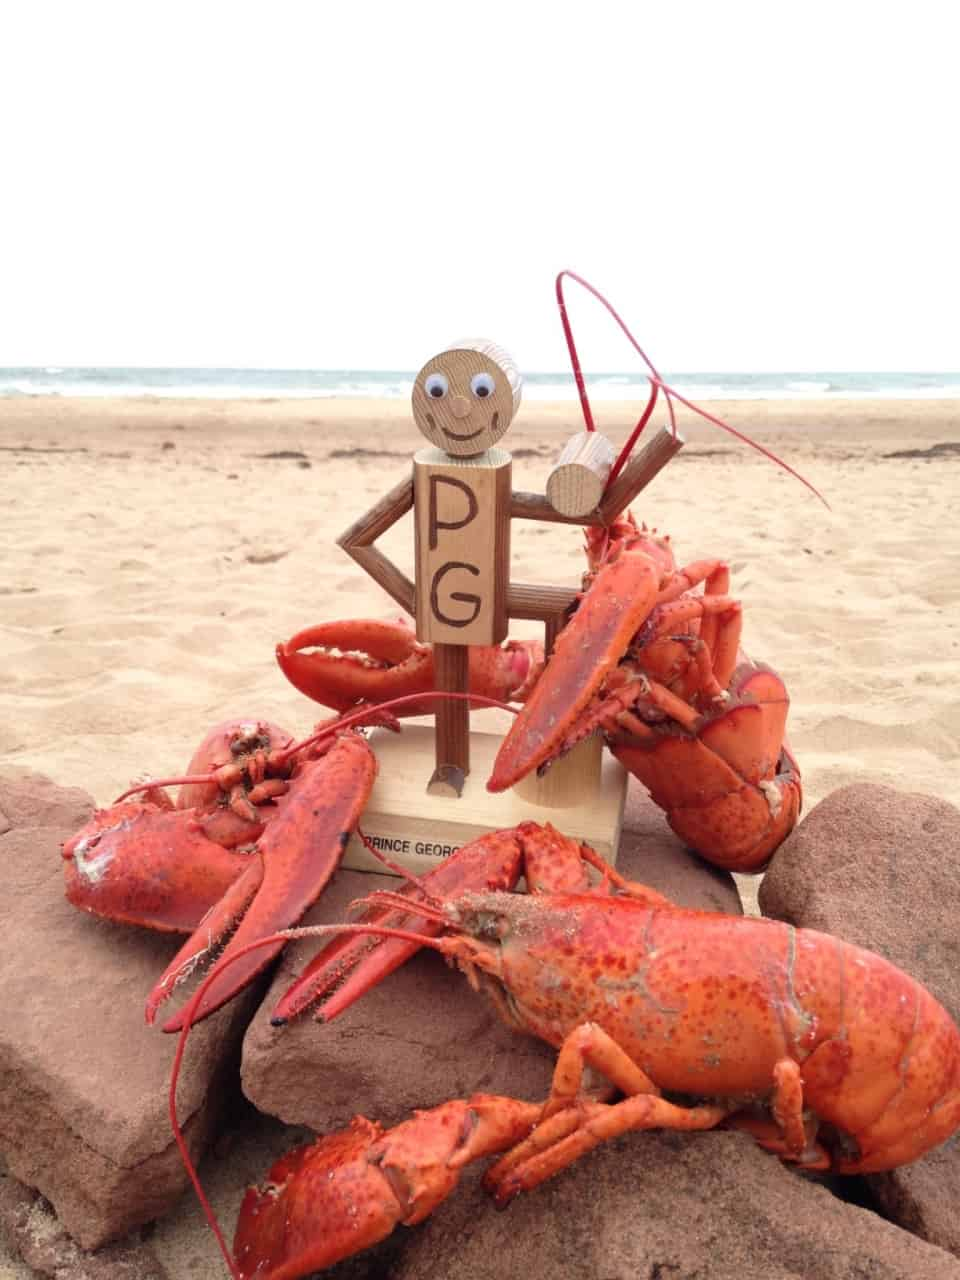 7921ba520b3b637983853d20.jpg - Hanging out with some friends on PEI beach